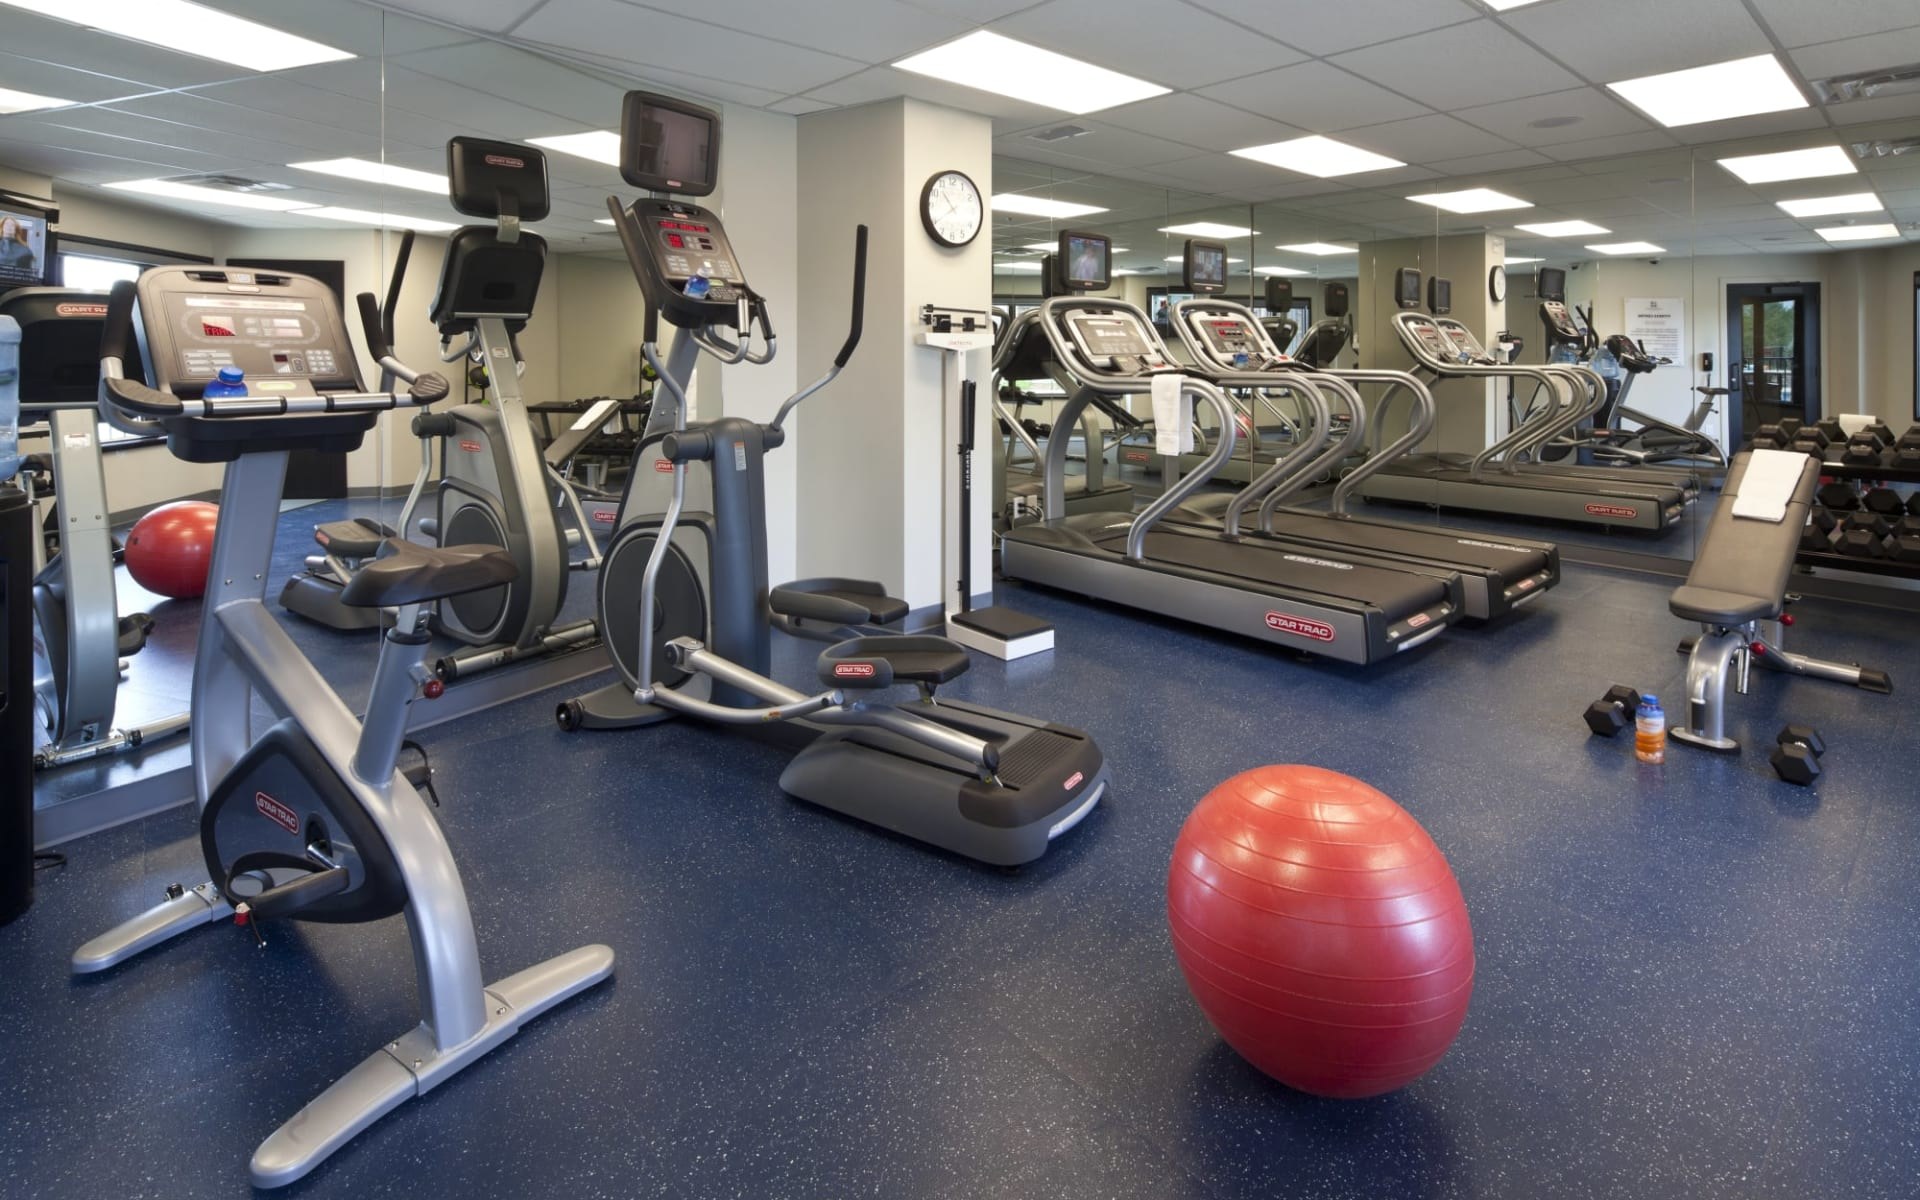 Copper Point Resort in Invermere: Facilities_Copper Point Resort_Fitness Centre_Jonview